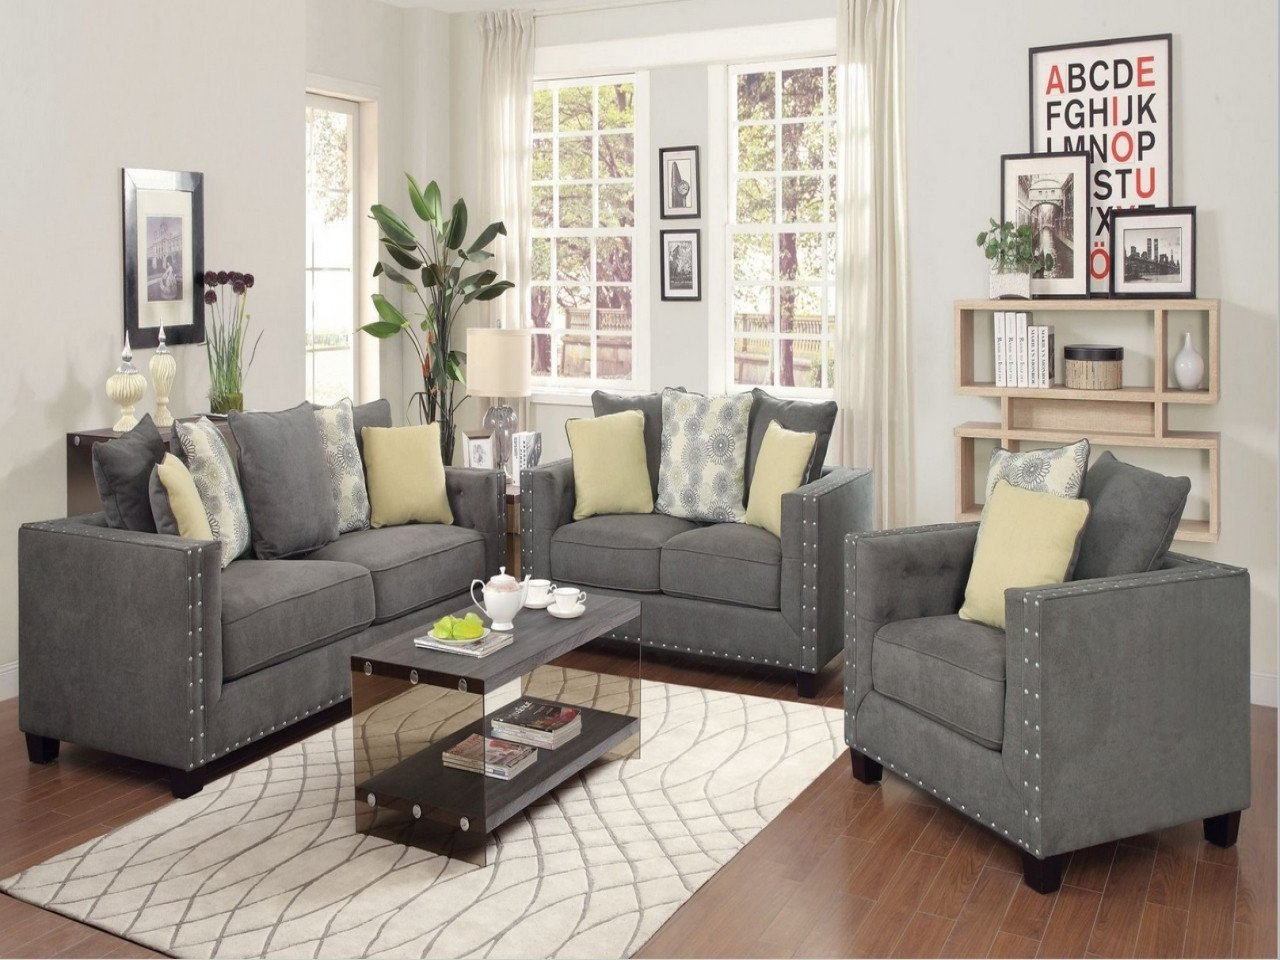 Living Room Ideas Furniture Inspirational Fabric Ideas for Dining Room Chairs Grey Living Room